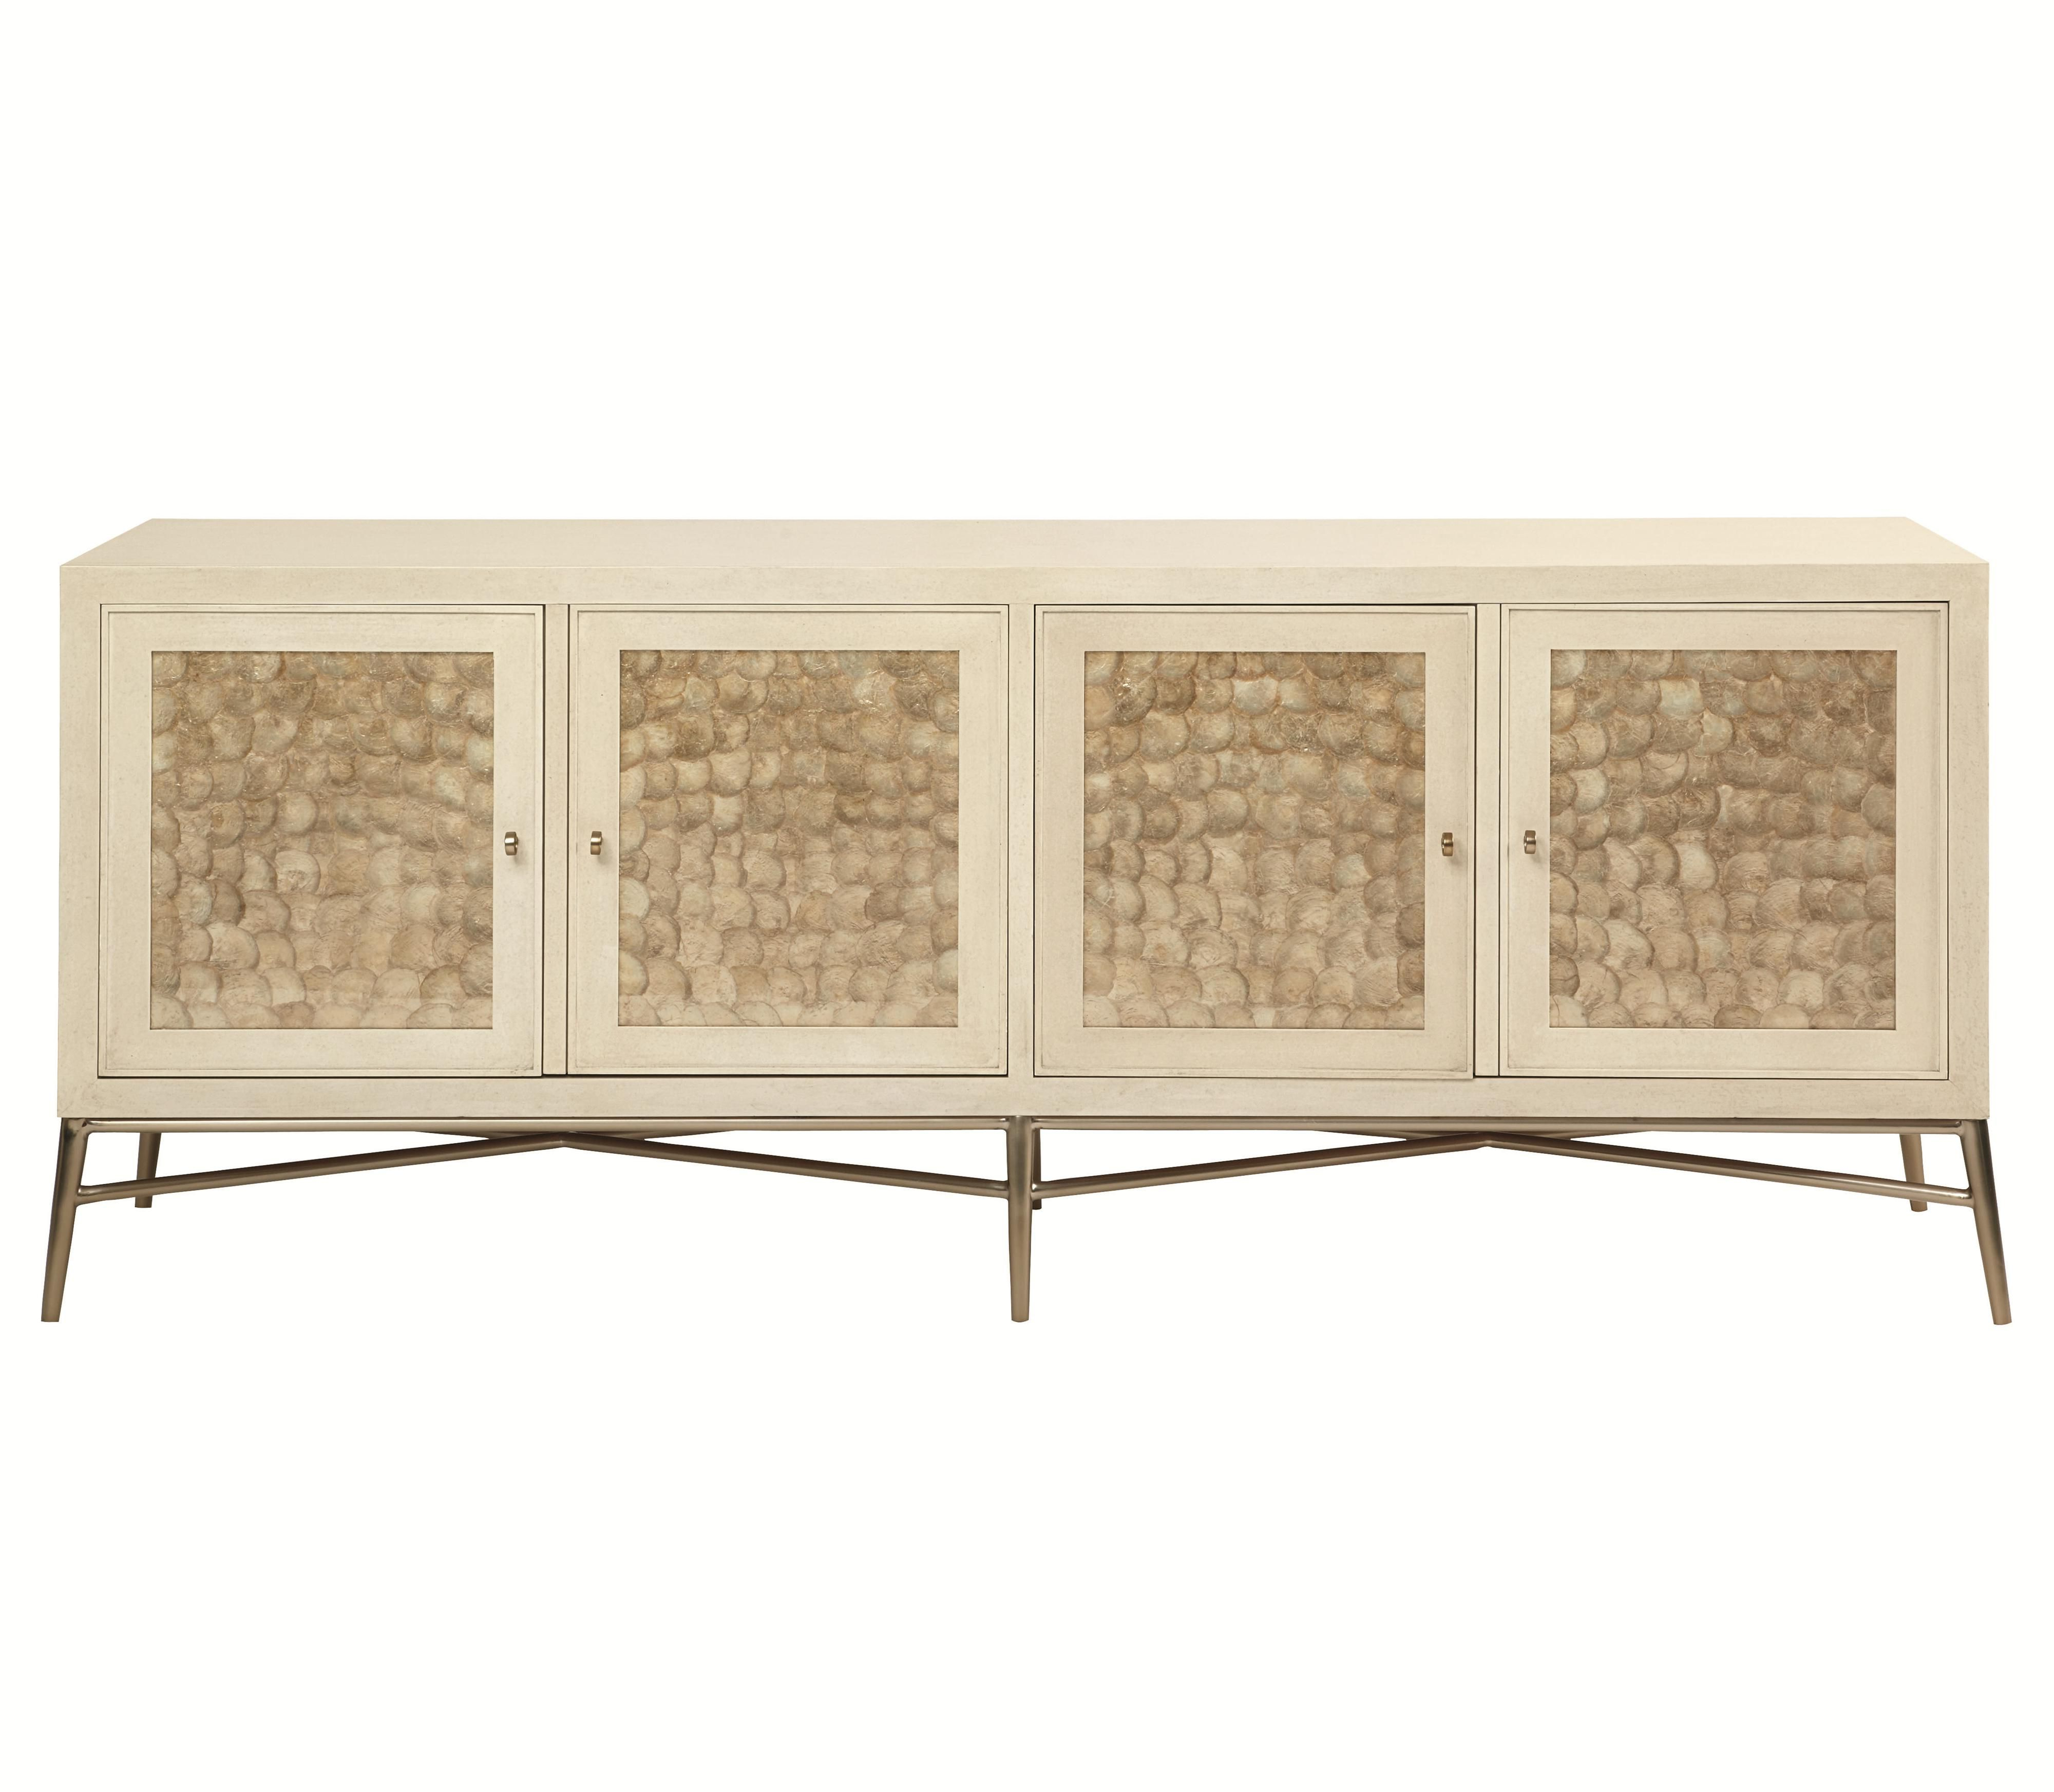 Widely Used Salon 4 Door Buffet With Inset Capiz Shellsbernhardt (View 10 of 20)